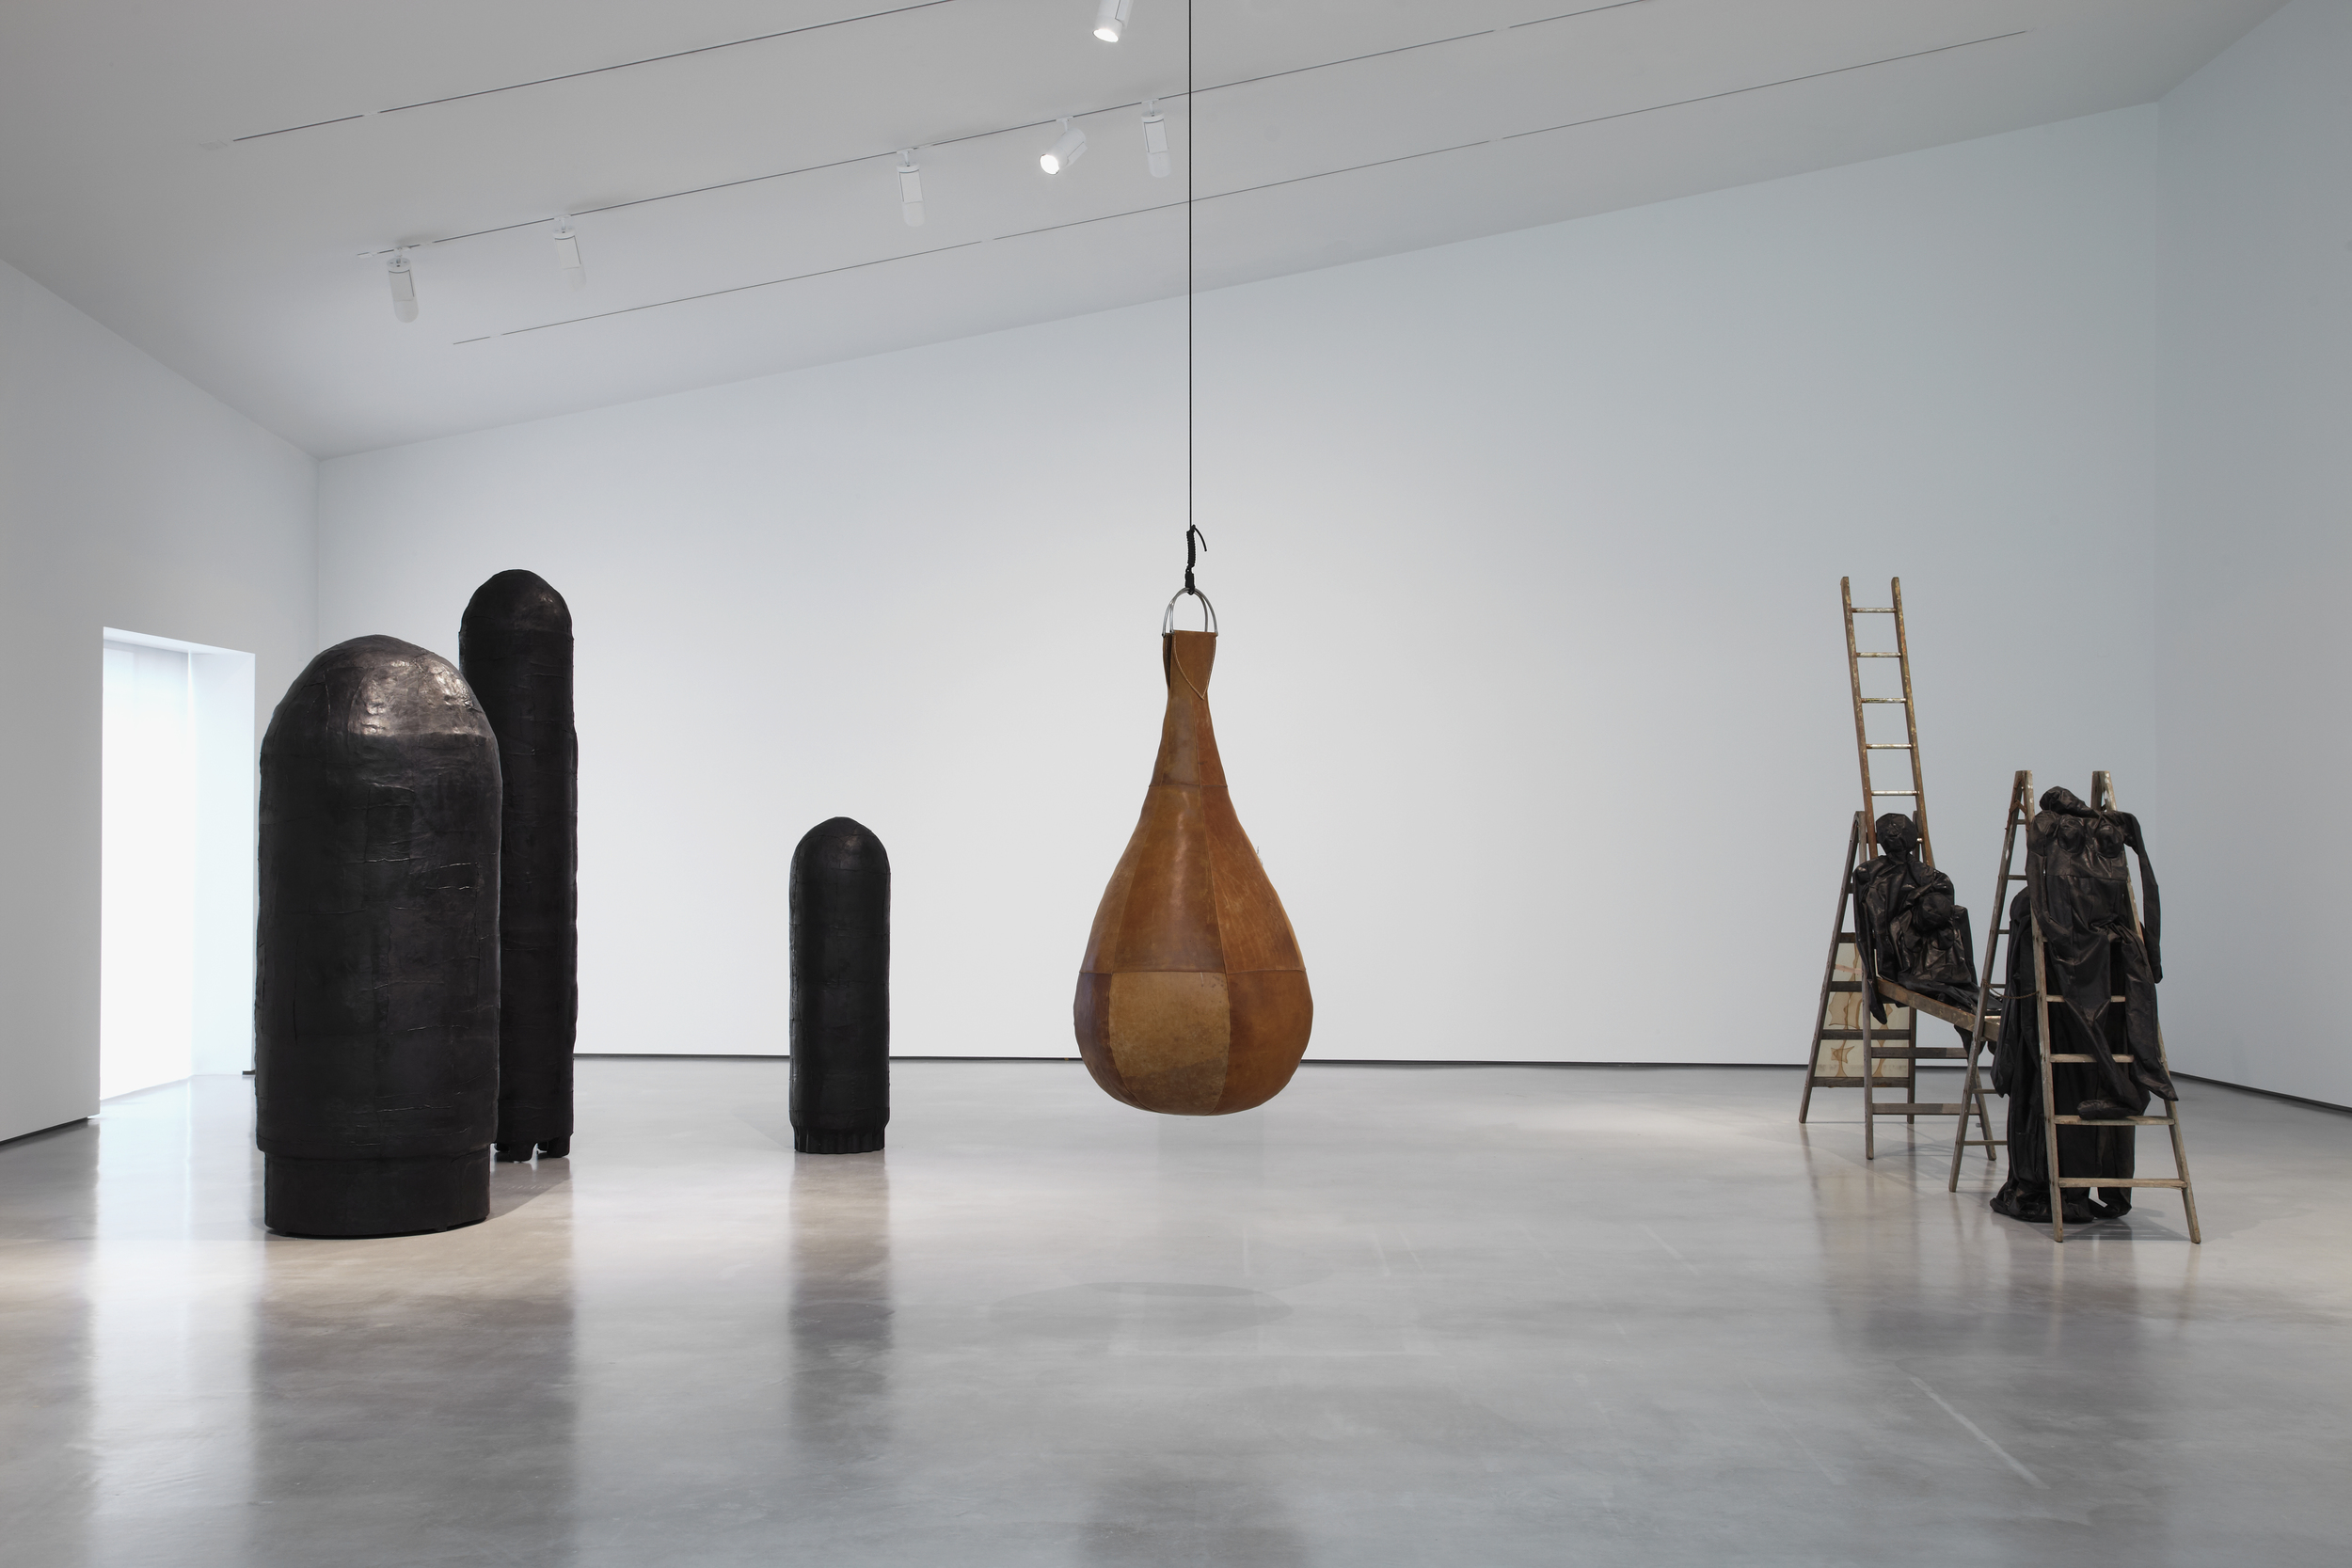 Eskalation  Installation View  The Hepworth Wakefield, Wakefield  2014